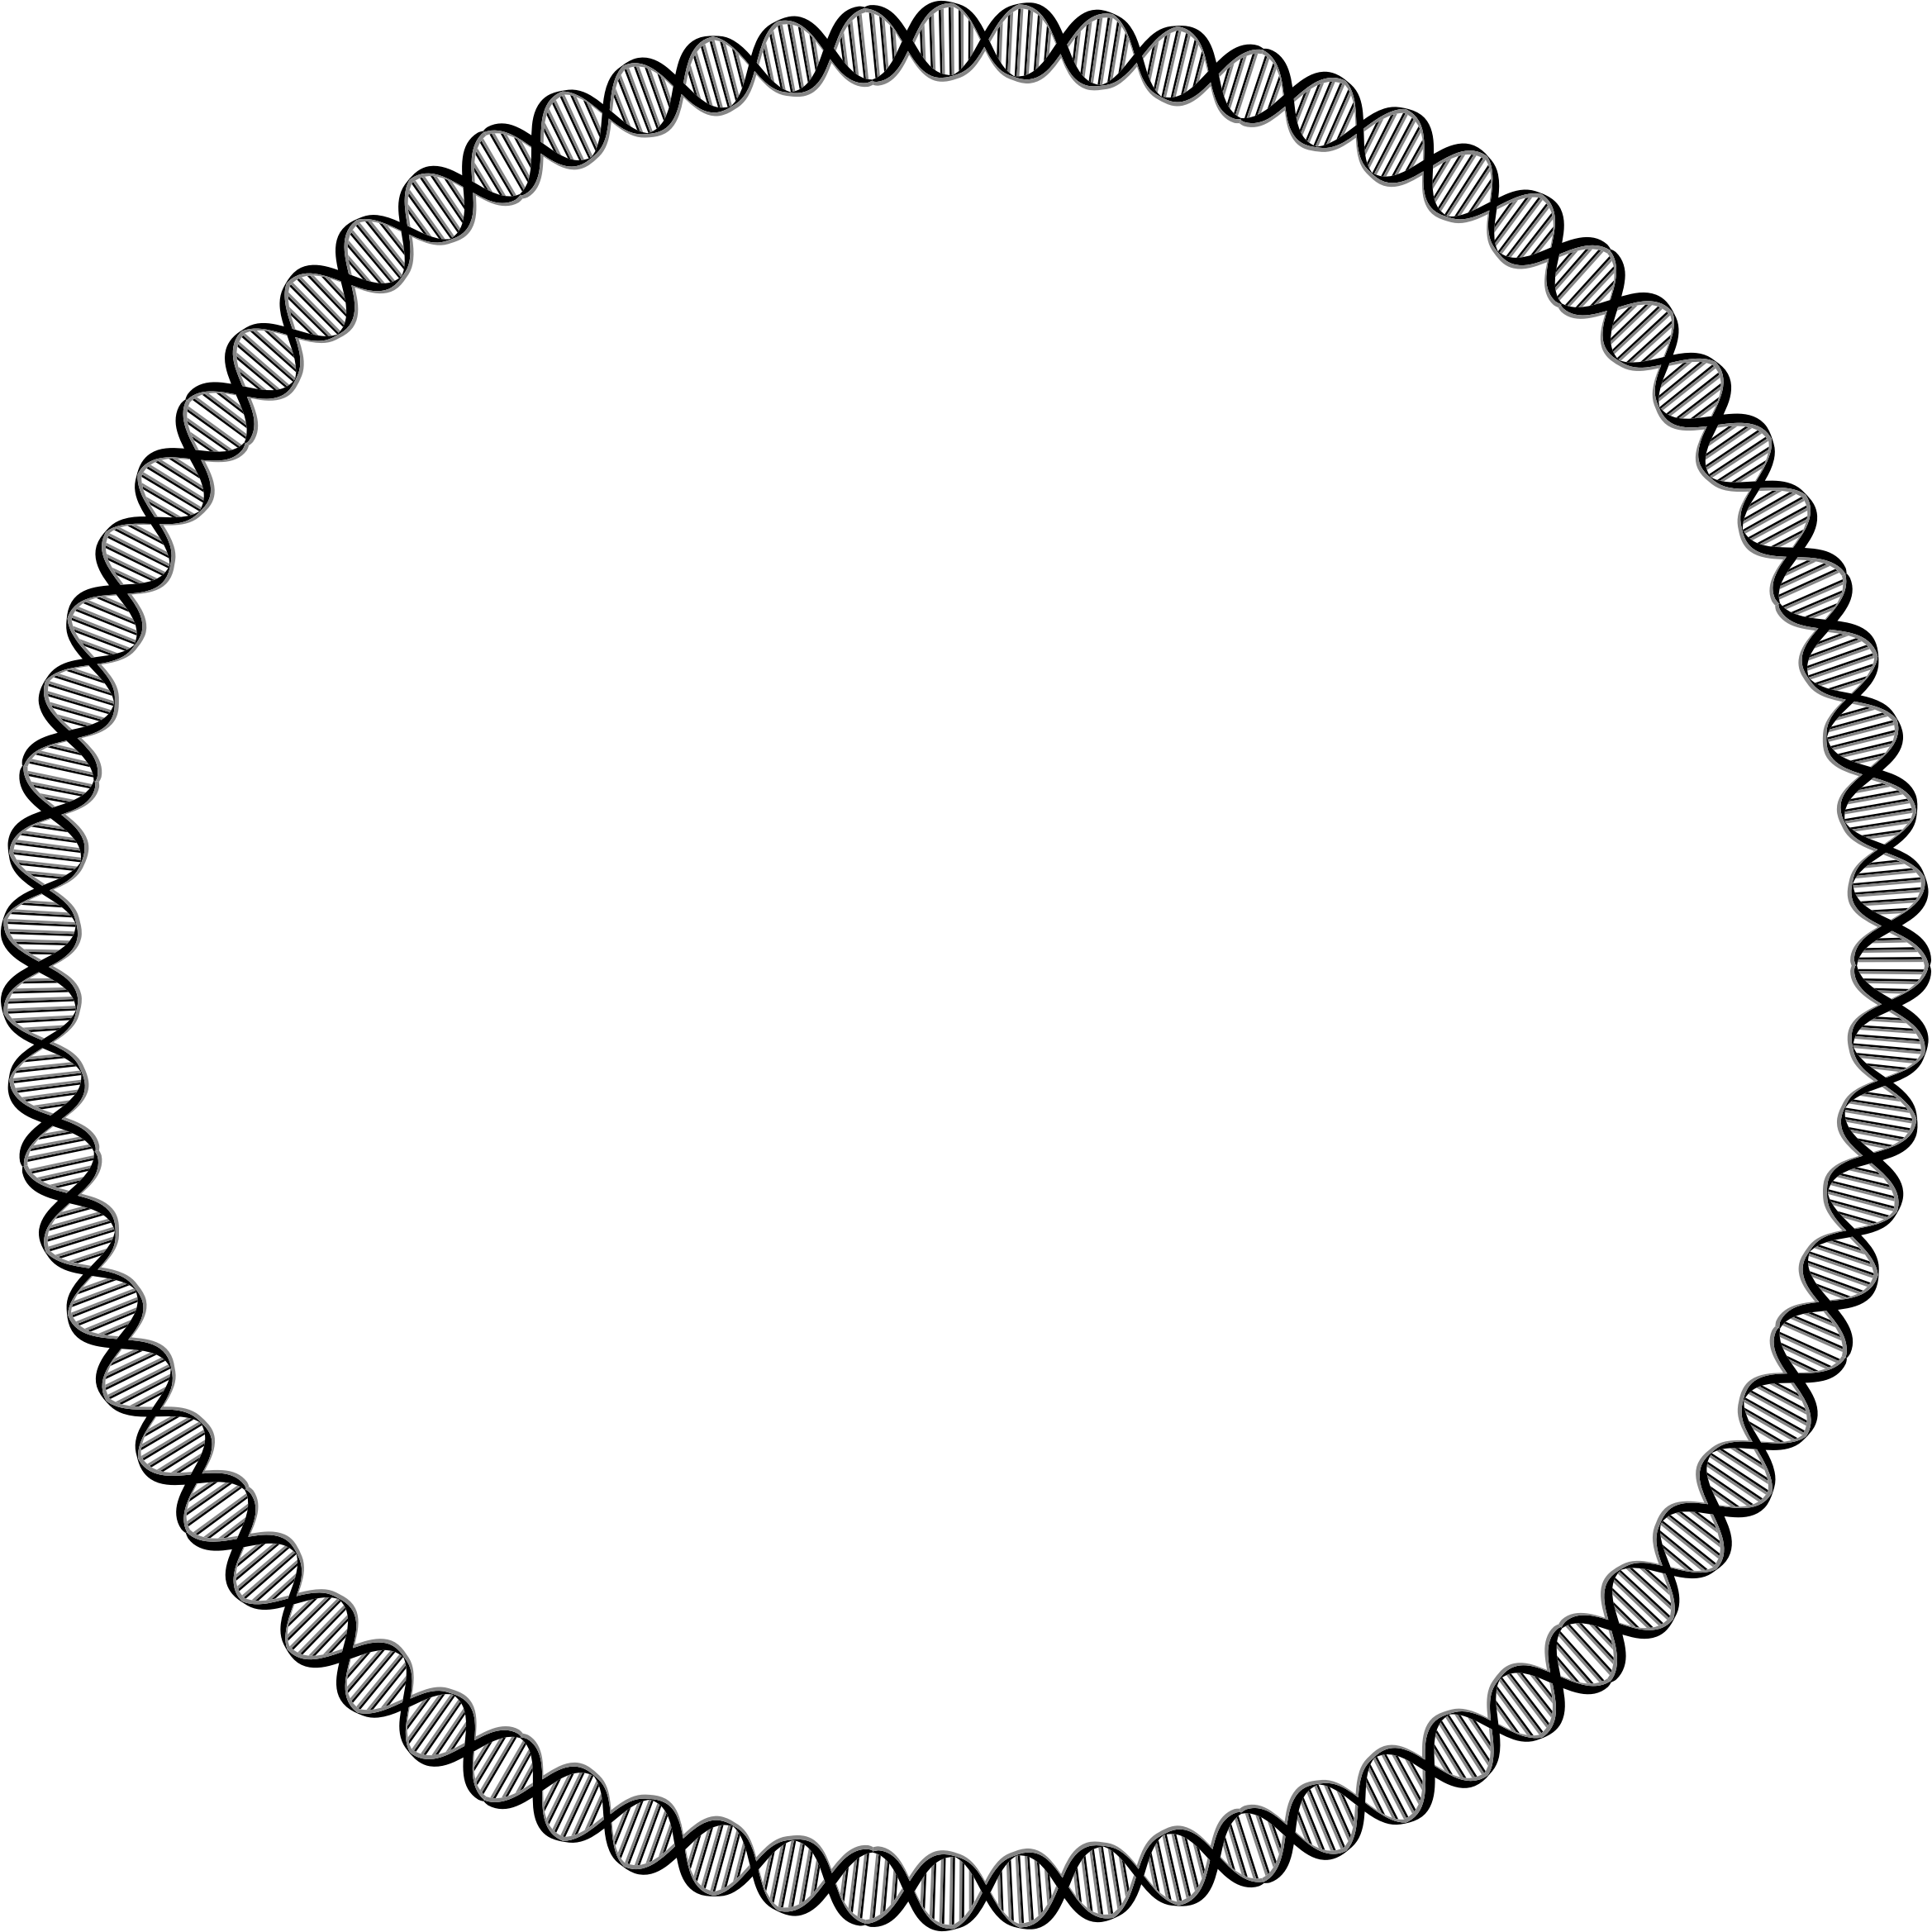 Circle clipart plain. Dna big image png